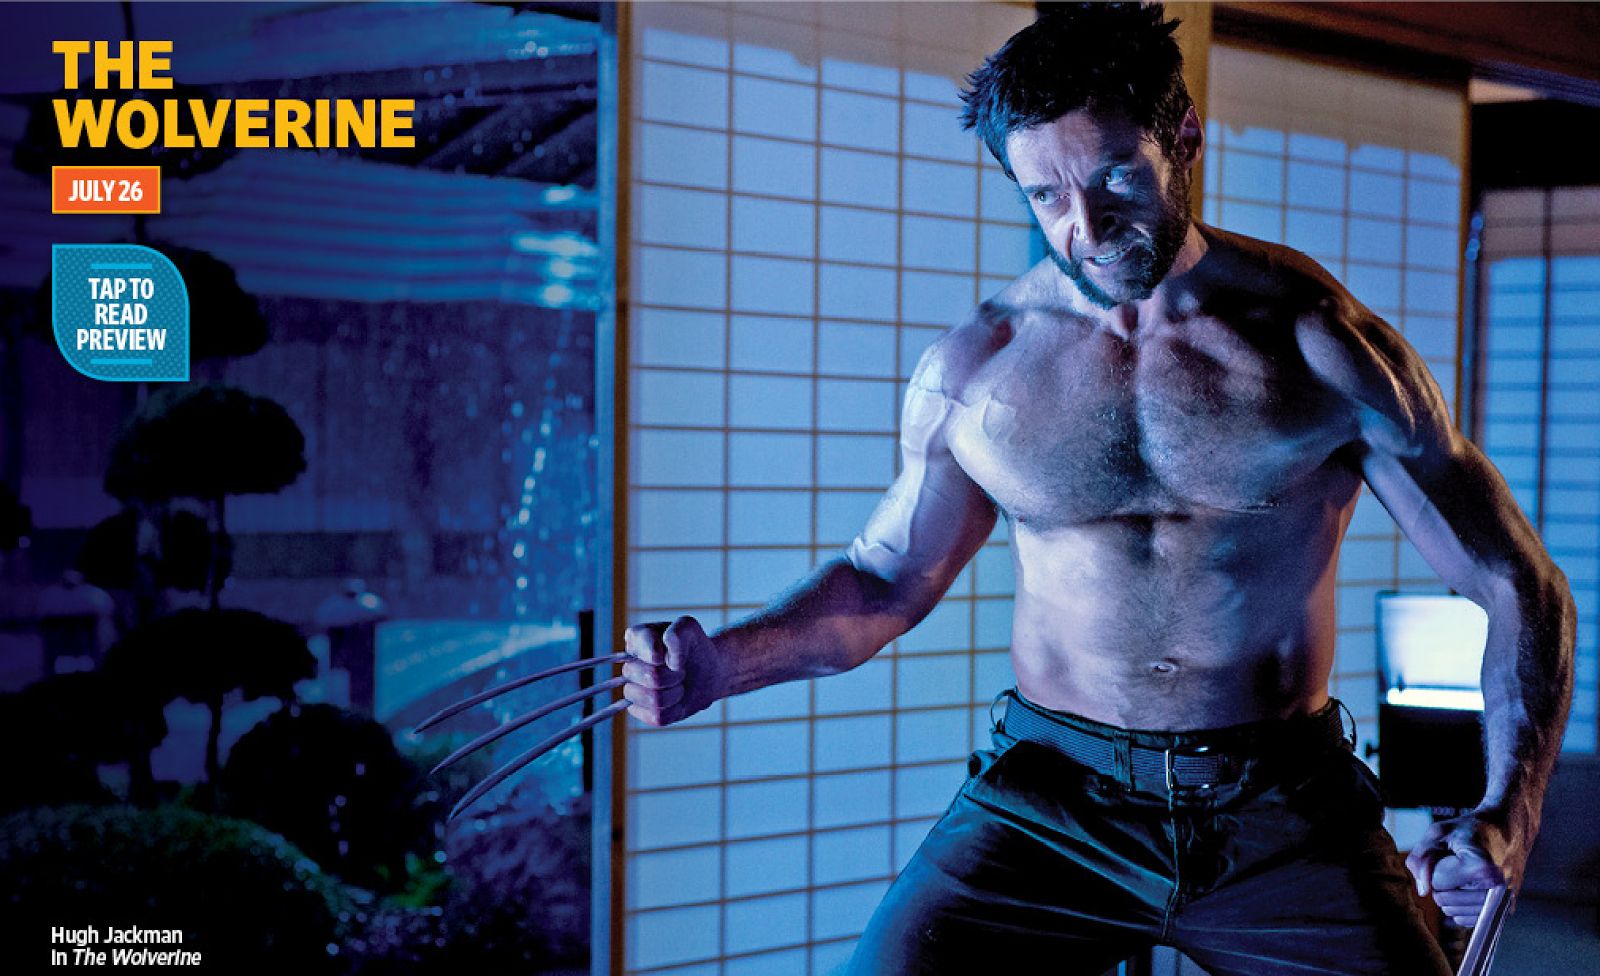 Hugh Jackman in new image from The Wolverine